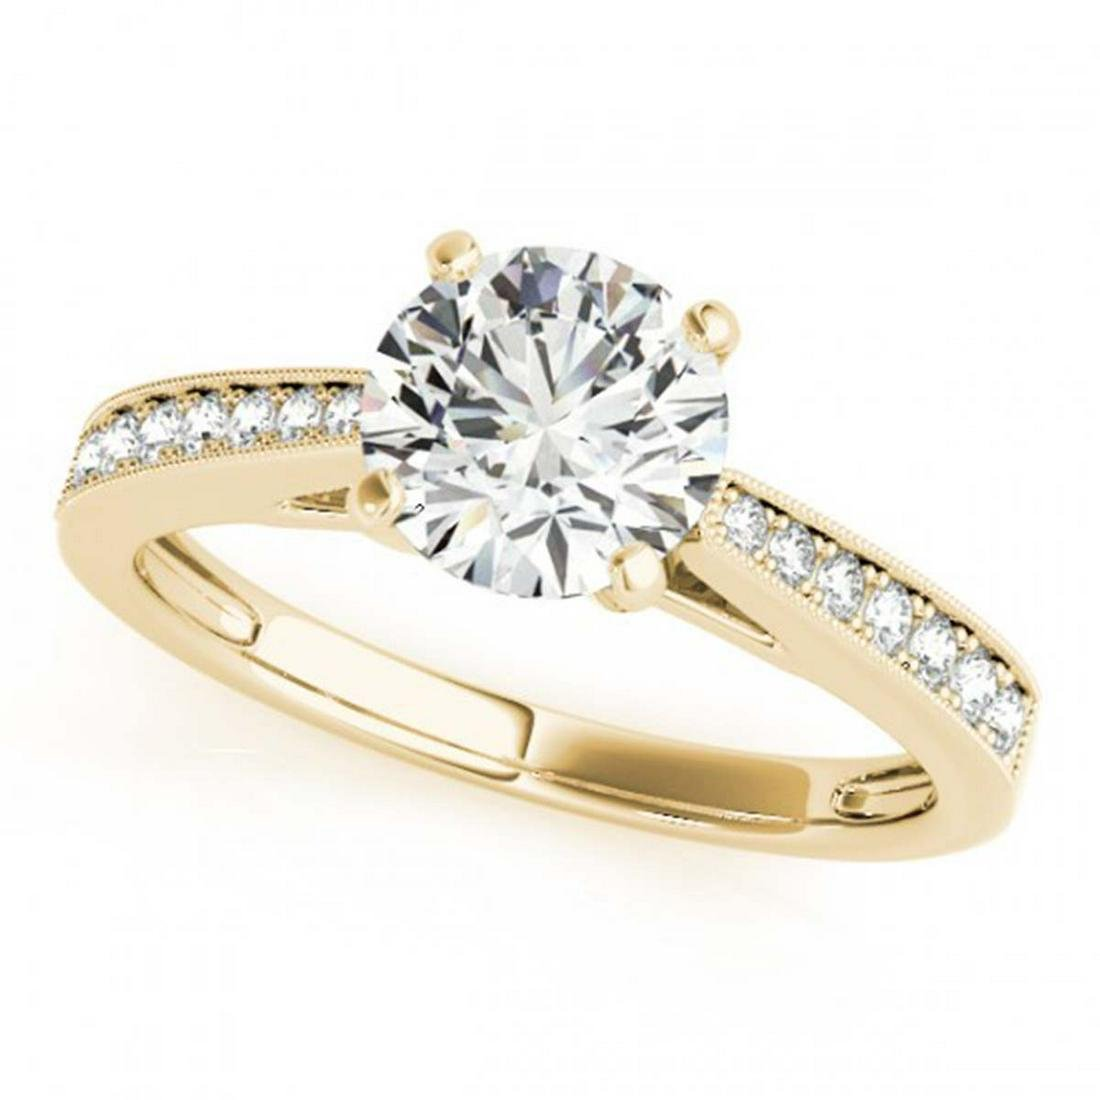 0.75 ctw VS/SI Diamond Solitaire Ring 14K Yellow Gold